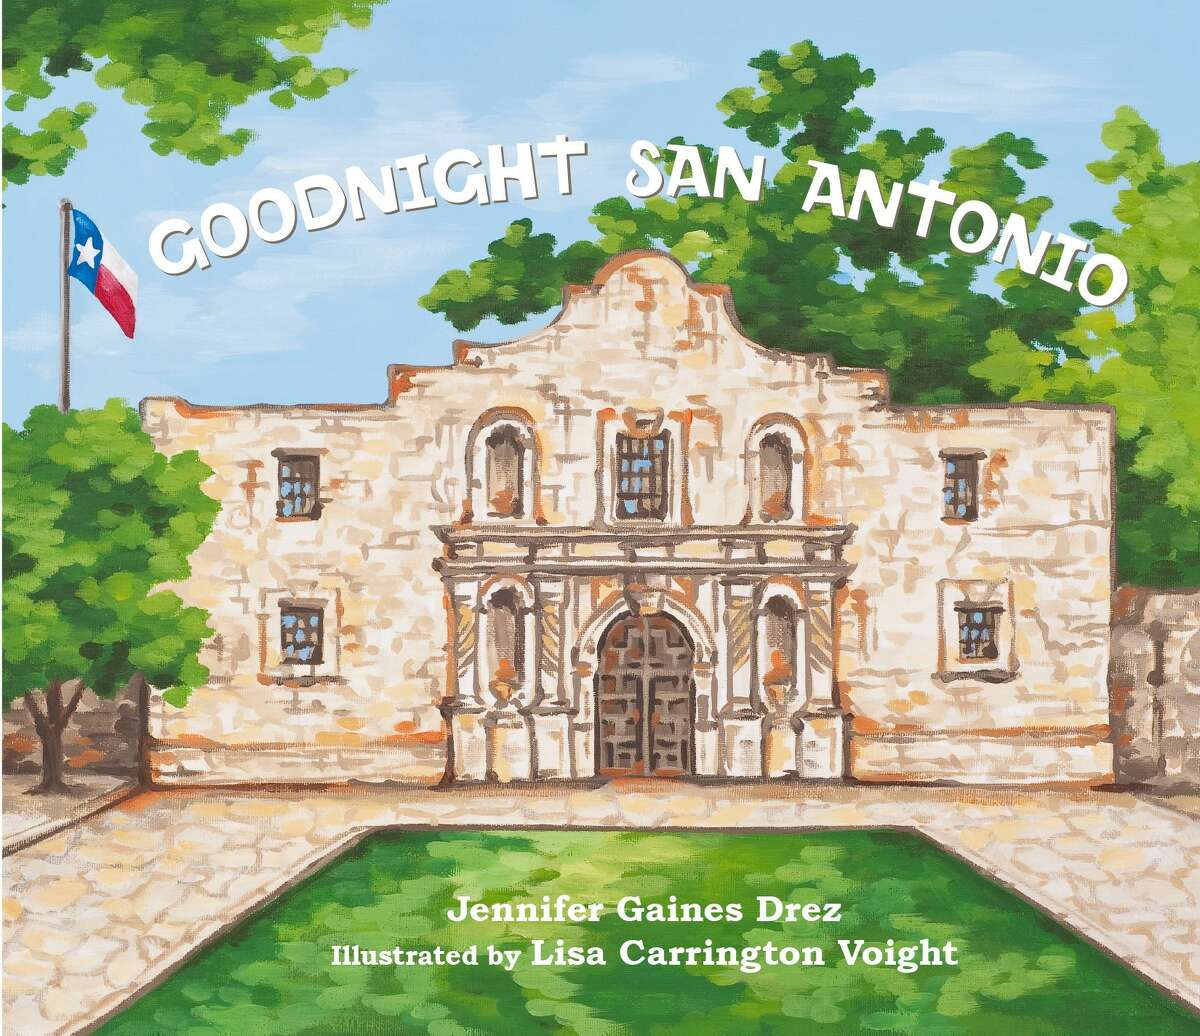 The Alamo is featured on the cover of